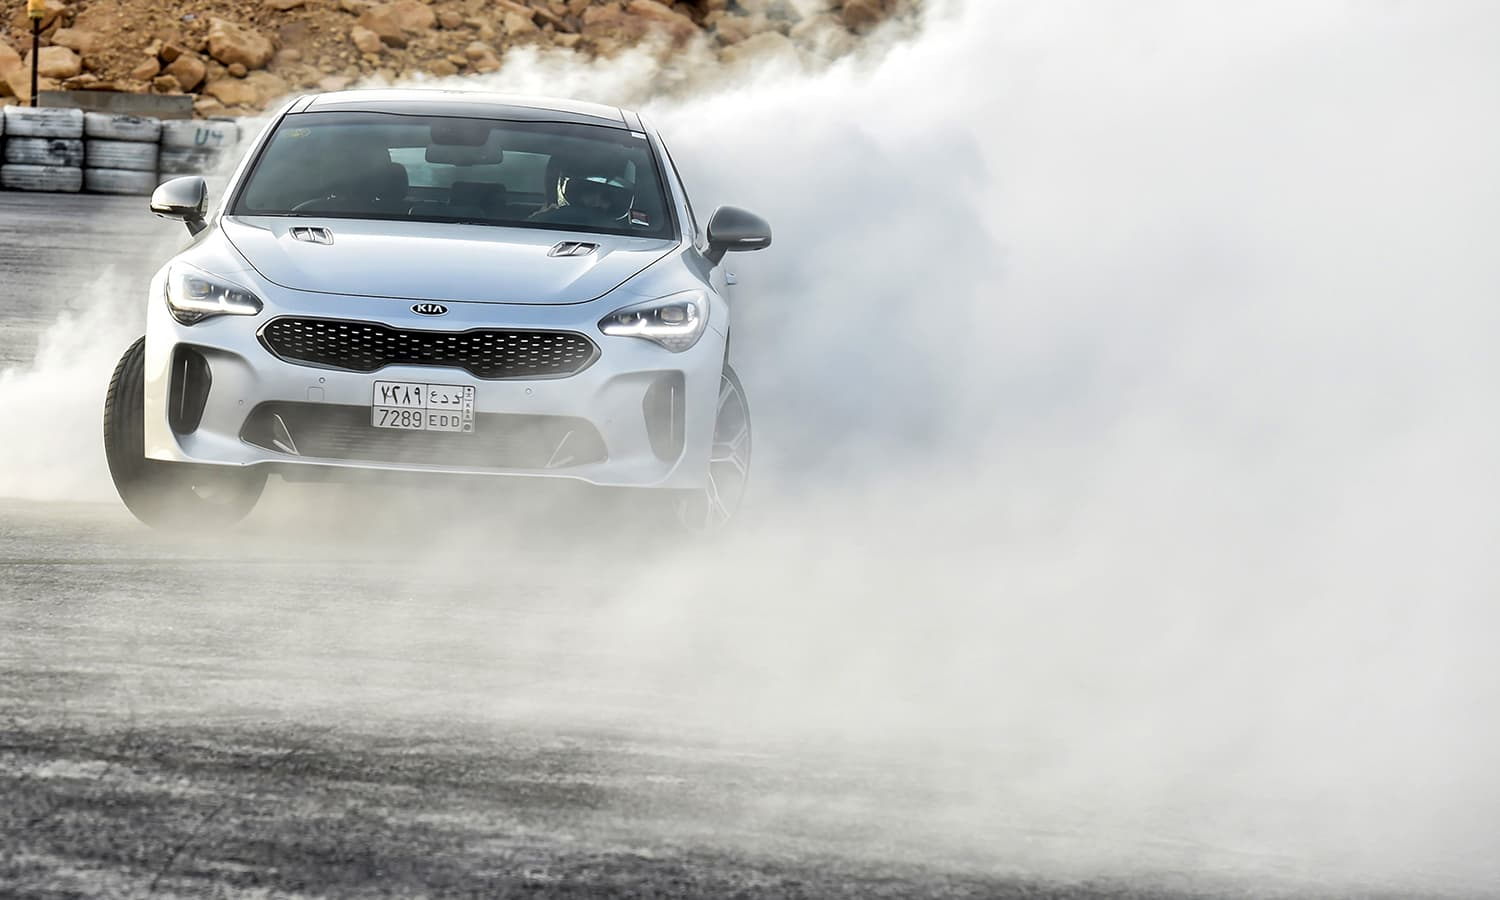 Rana Almimoni, a 30-year-old Saudi motor racing enthusiast, drifts a car on a track in Dirab motor park, on the southern outskirts of the capital Riyadh, on July 19, 2018. — AFP